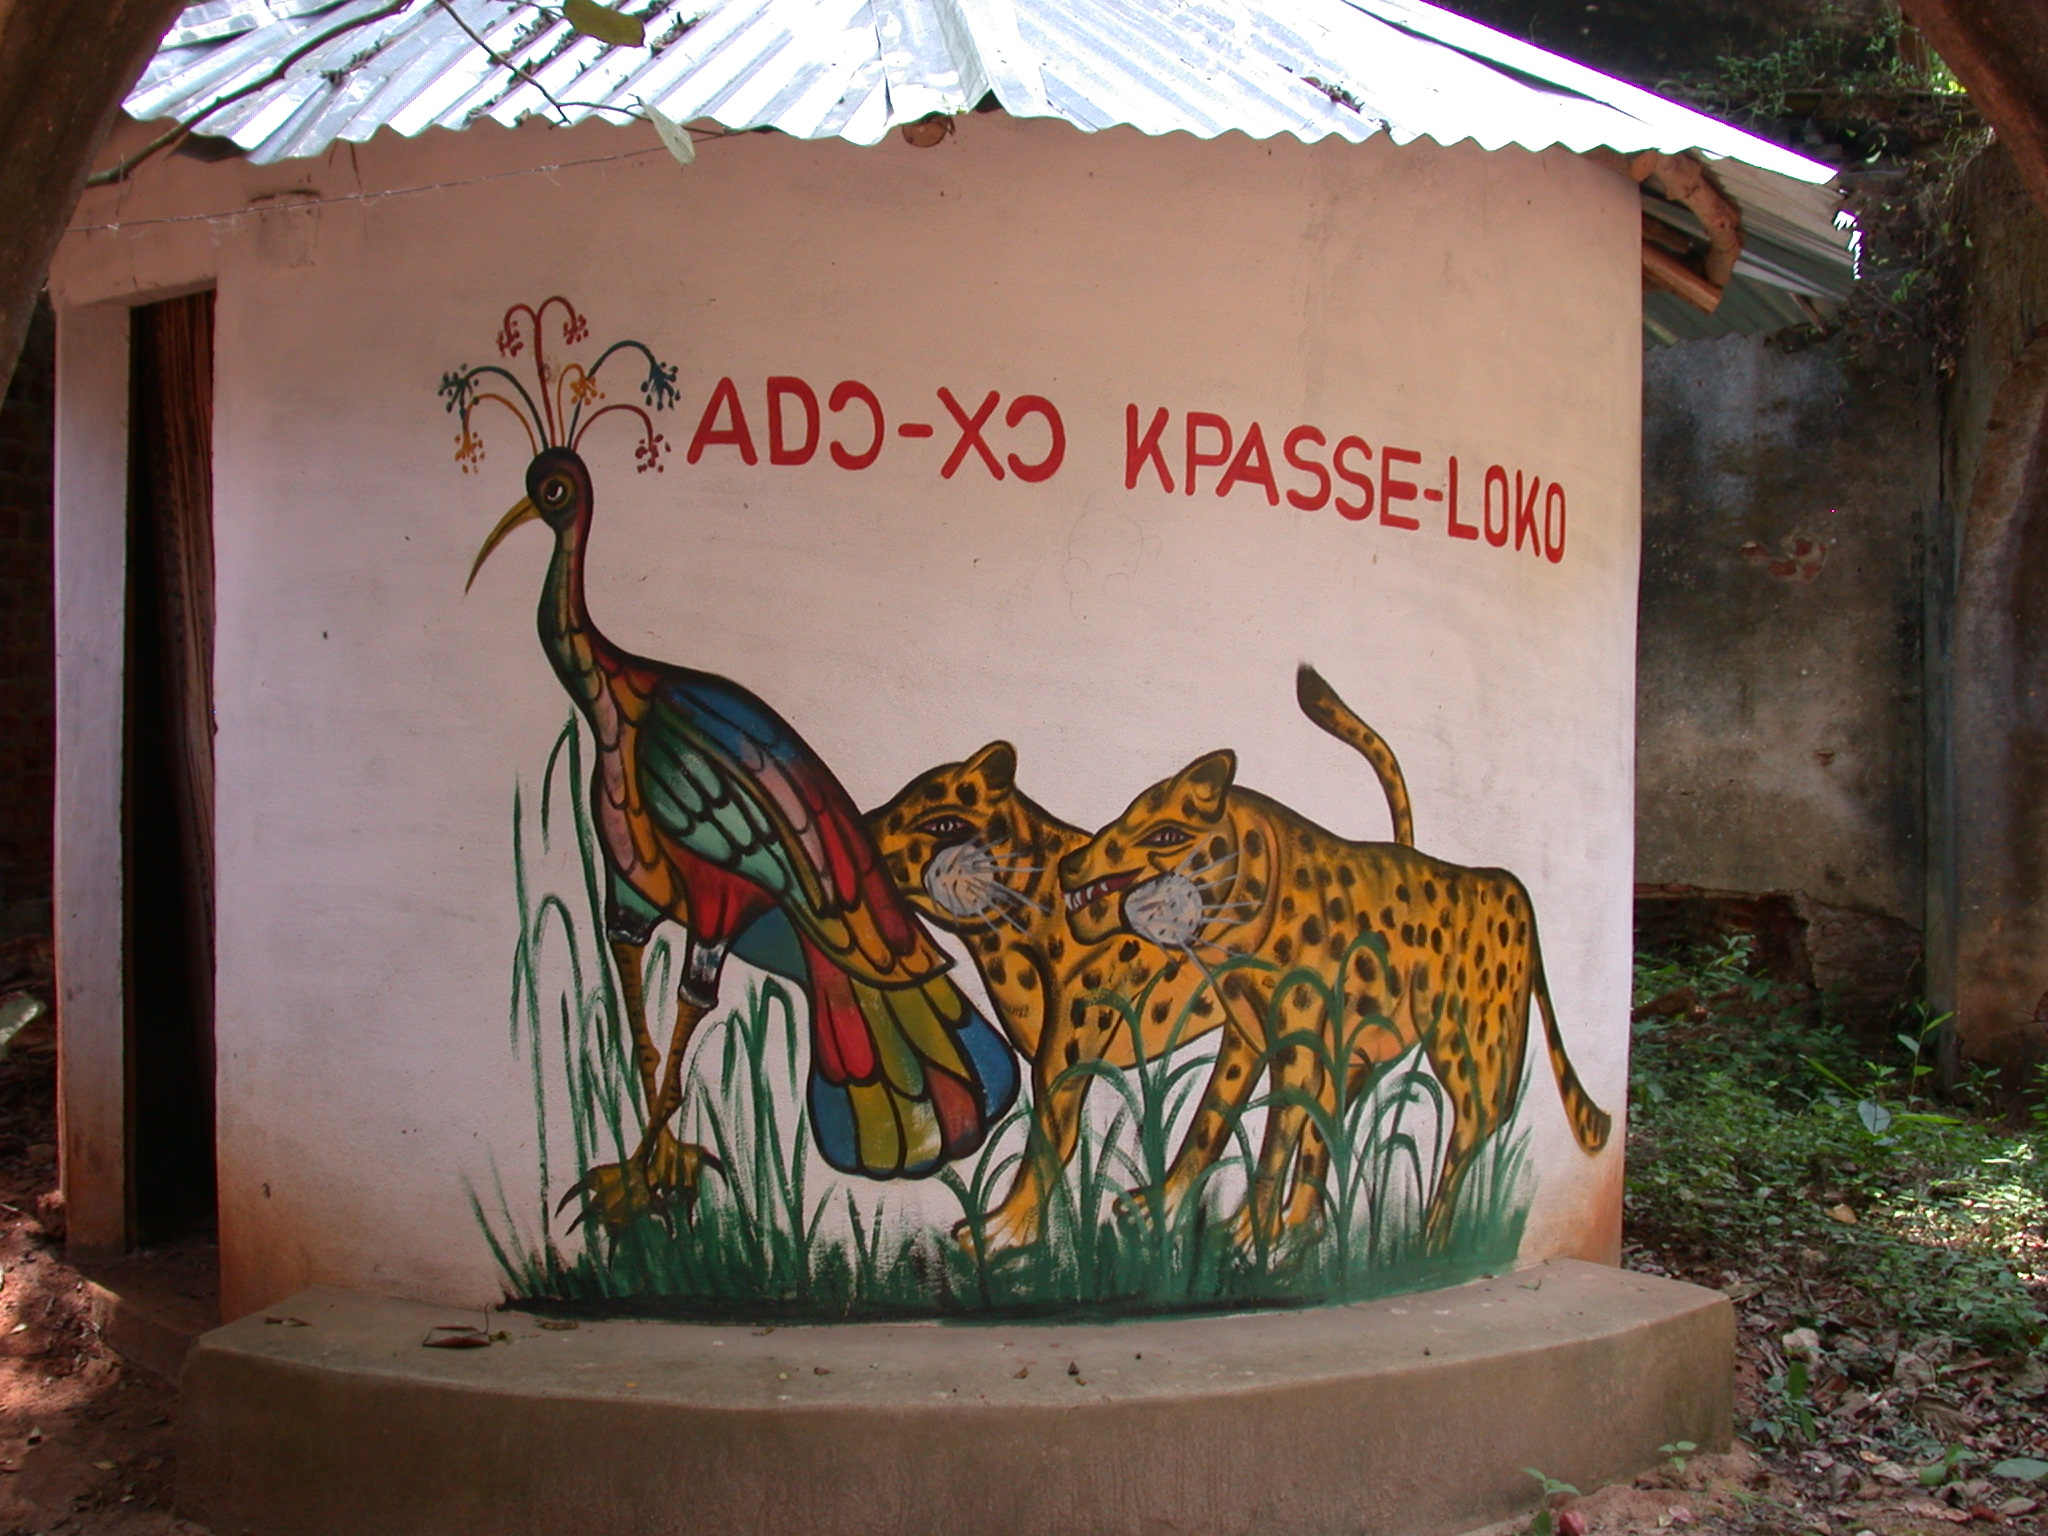 Shrine to Loko God of Iroko Tree Inhabited by Kpasse, Kpasse Sacred Forest, Ouidah, Benin